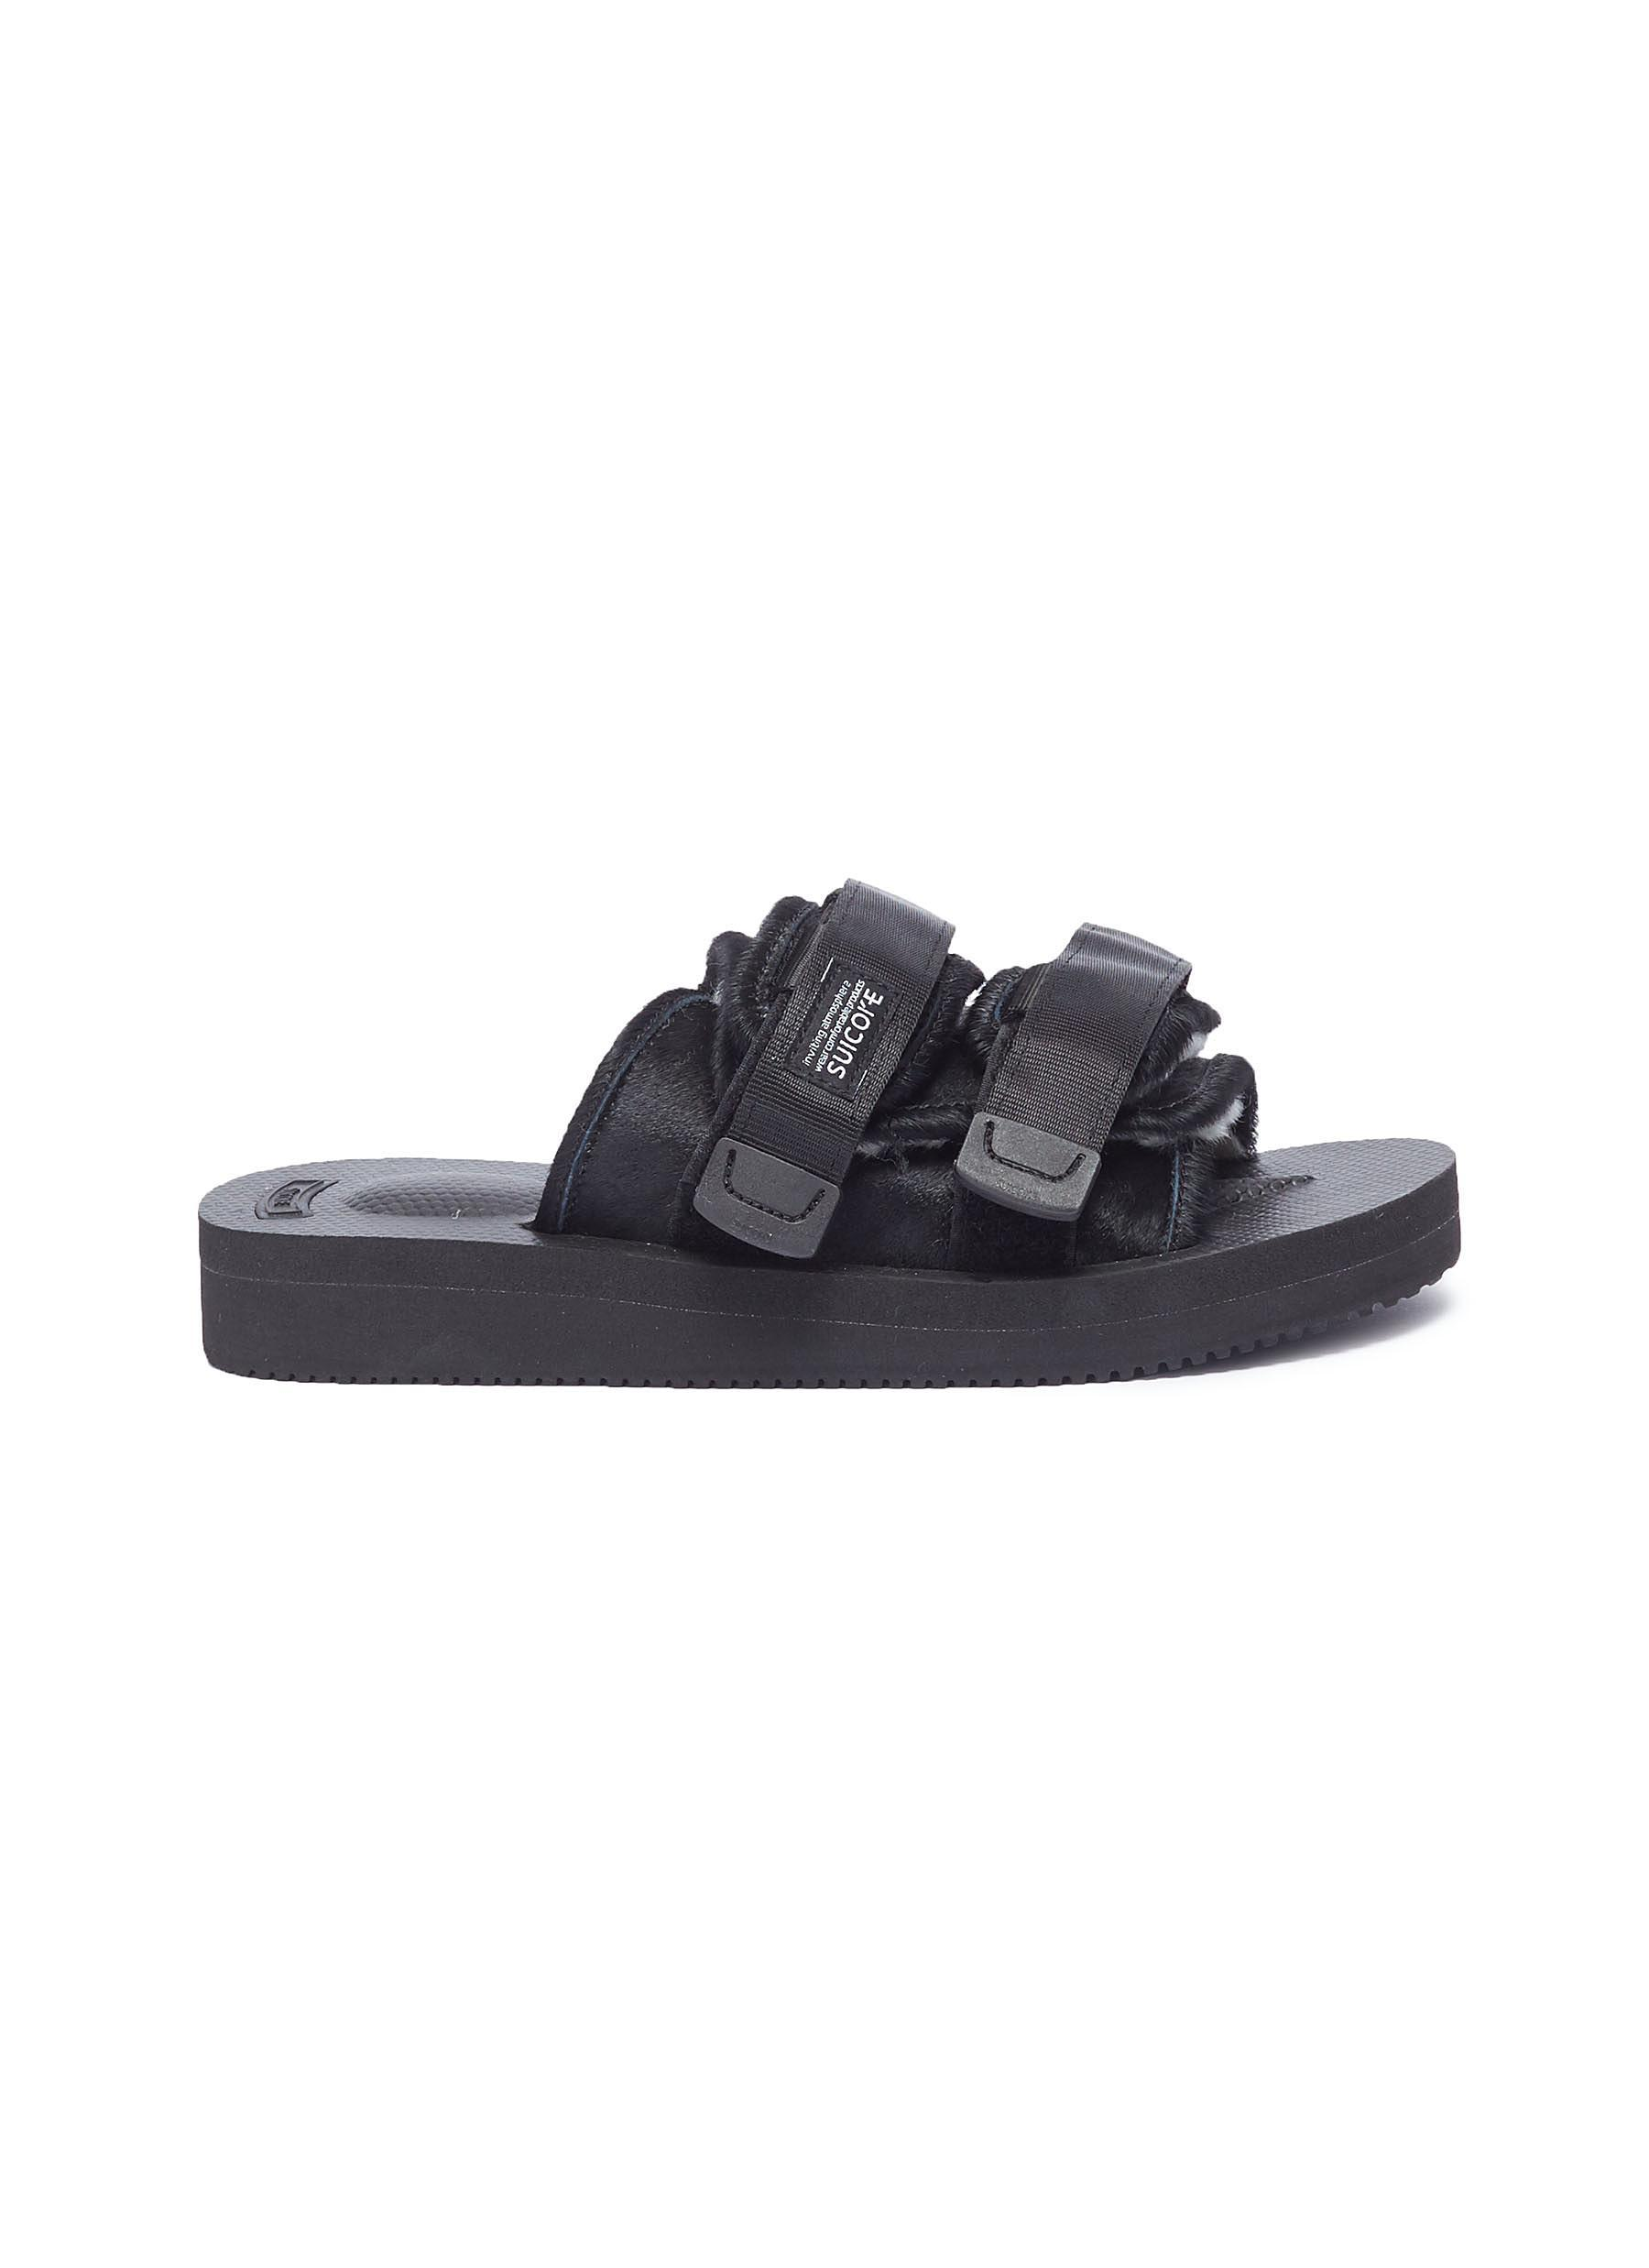 55c422e8853 Lyst - Suicoke  moto-vhl  Strappy Band Calf Fur Slide Sandals for Men